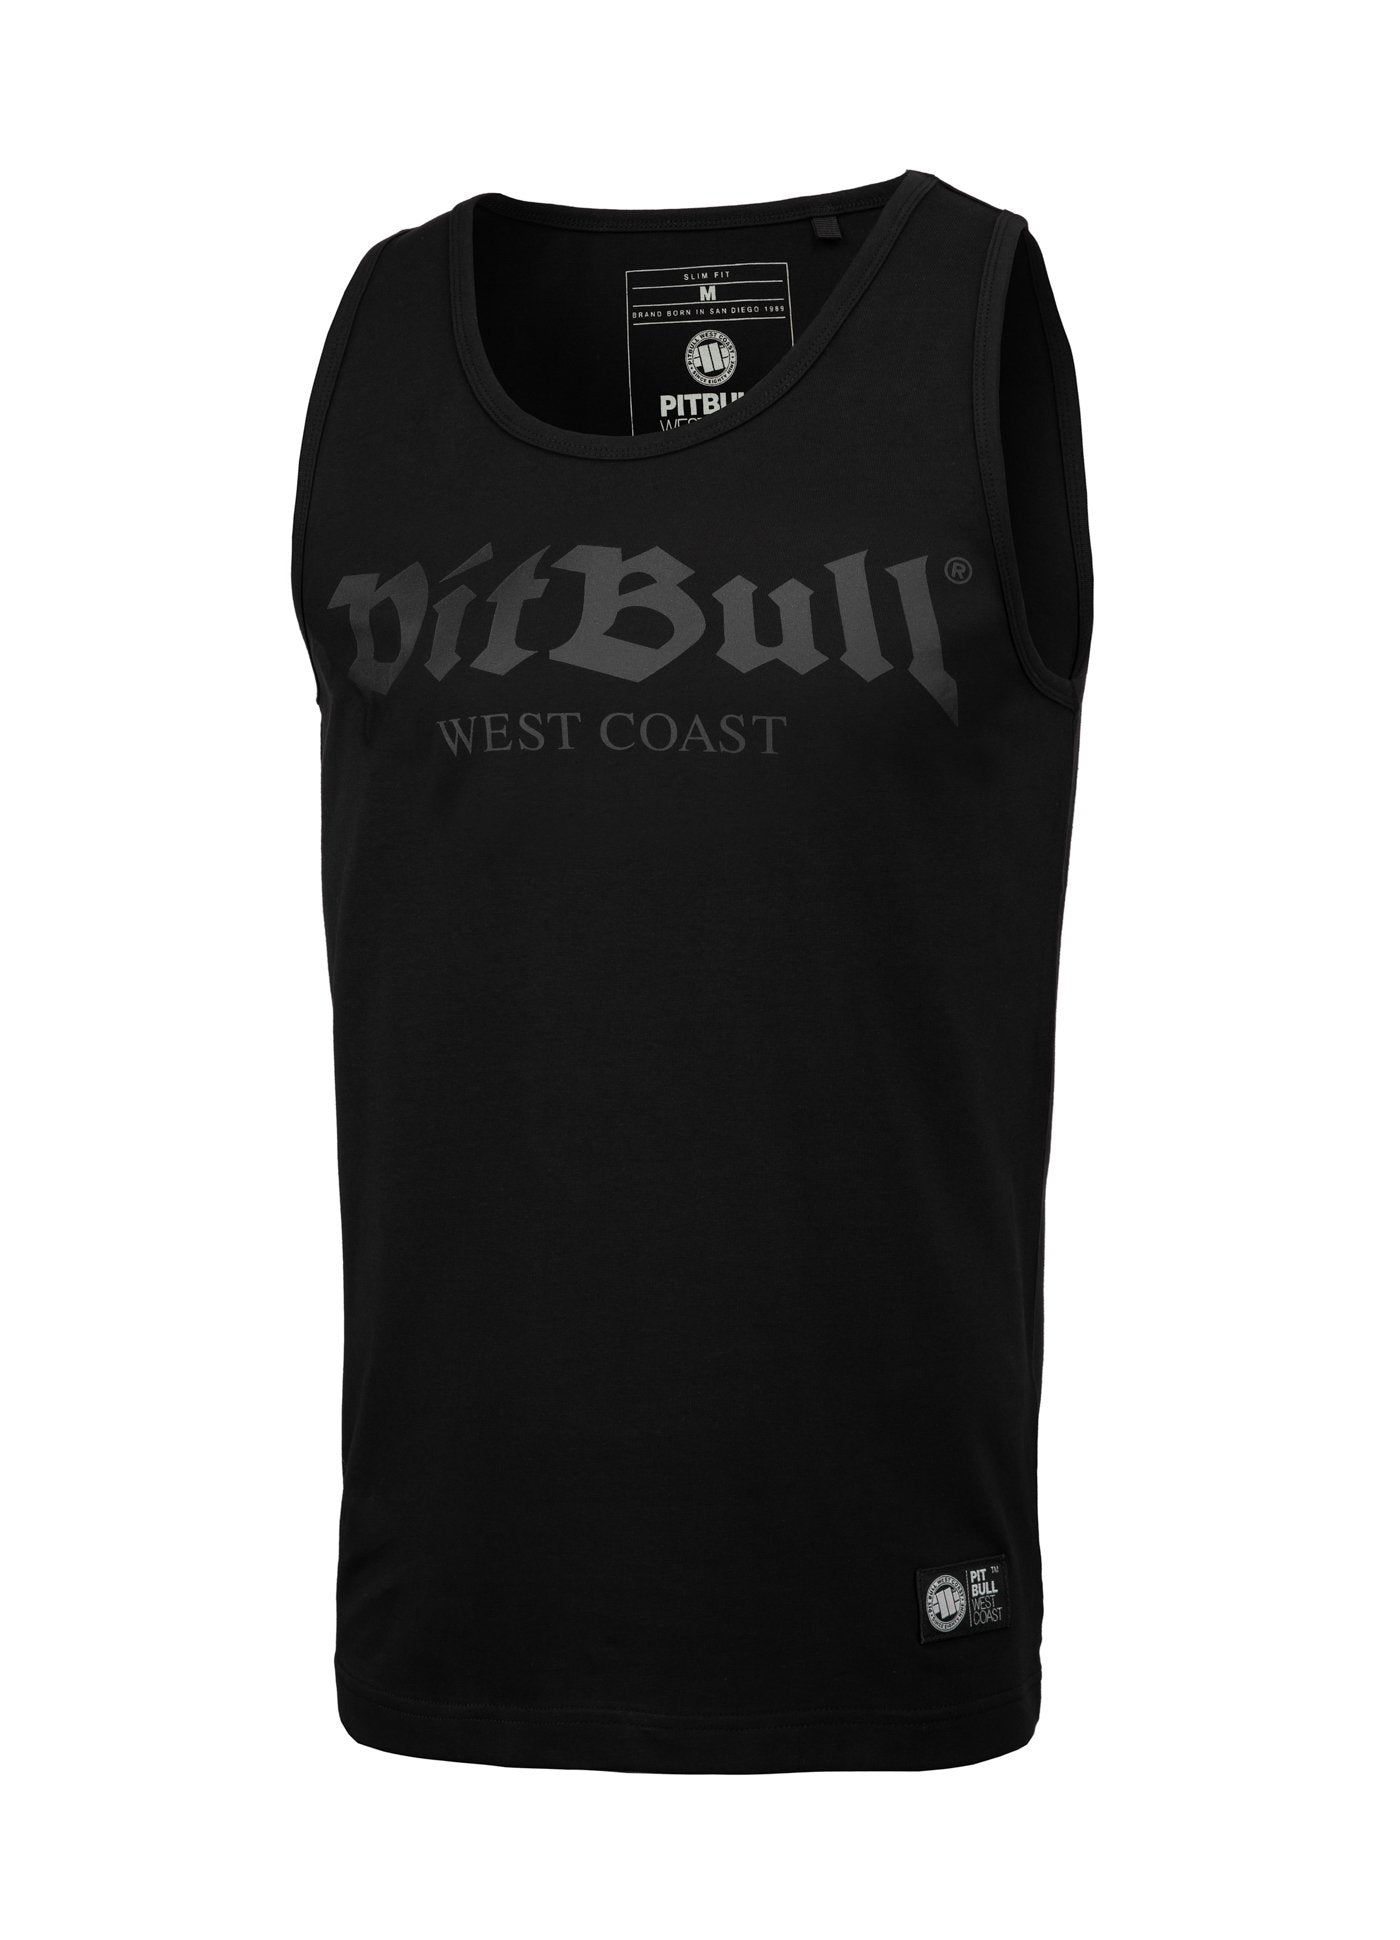 Tank Top Slim Fit Old Logo Black - Pitbull West Coast U.S.A.